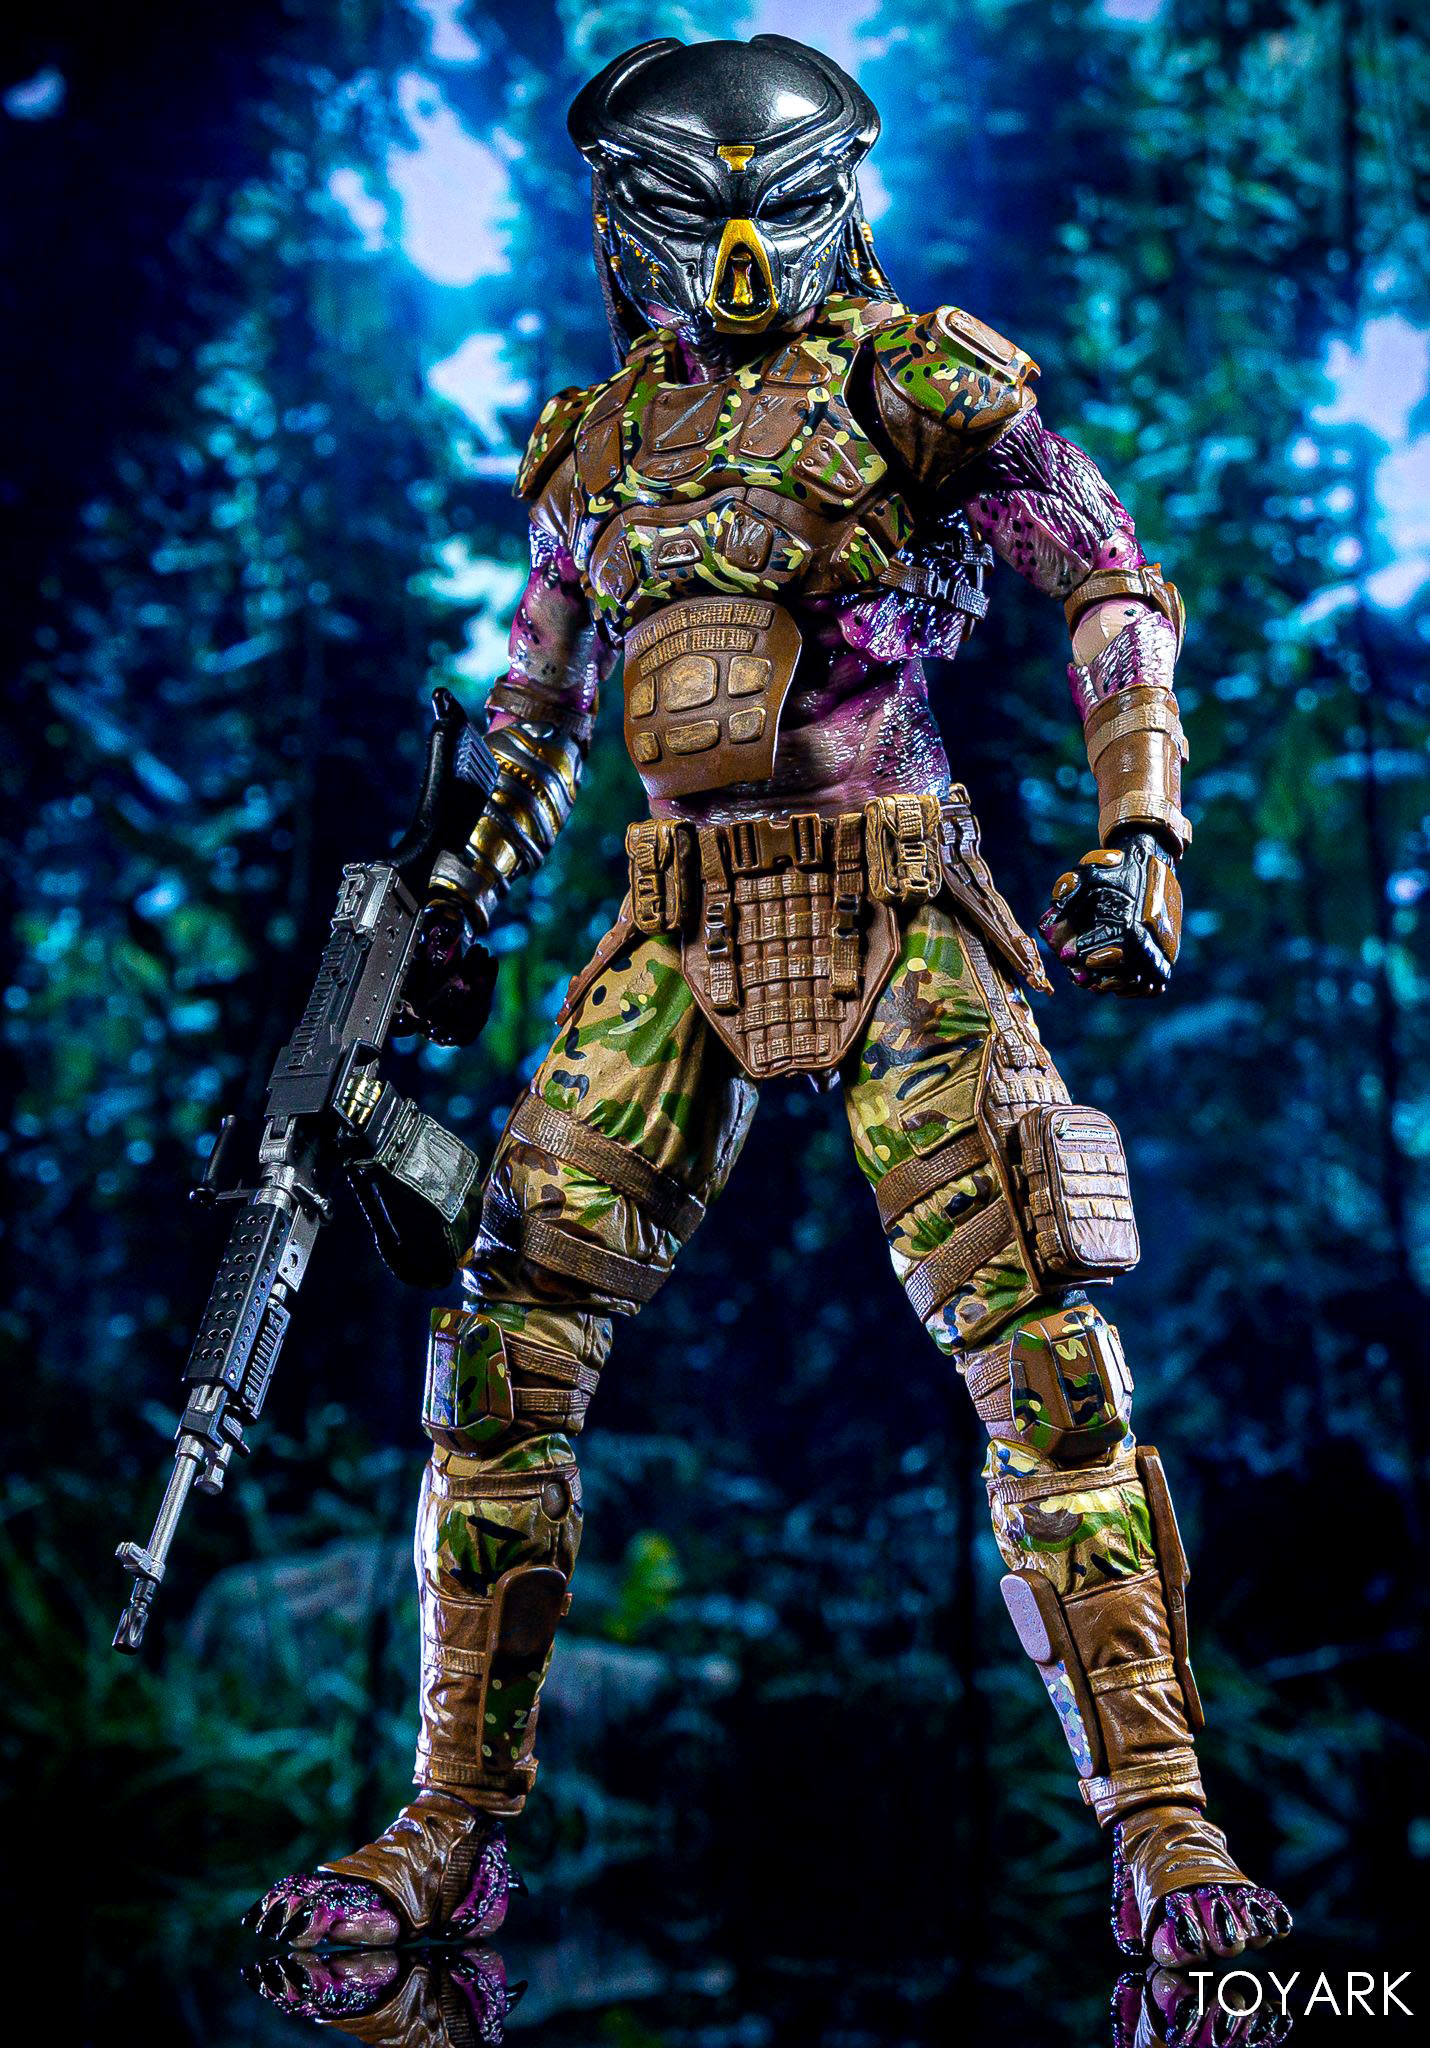 https://news.toyark.com/wp-content/uploads/sites/4/2019/05/Emissary-Predator-1-NECA-Figure-014.jpg